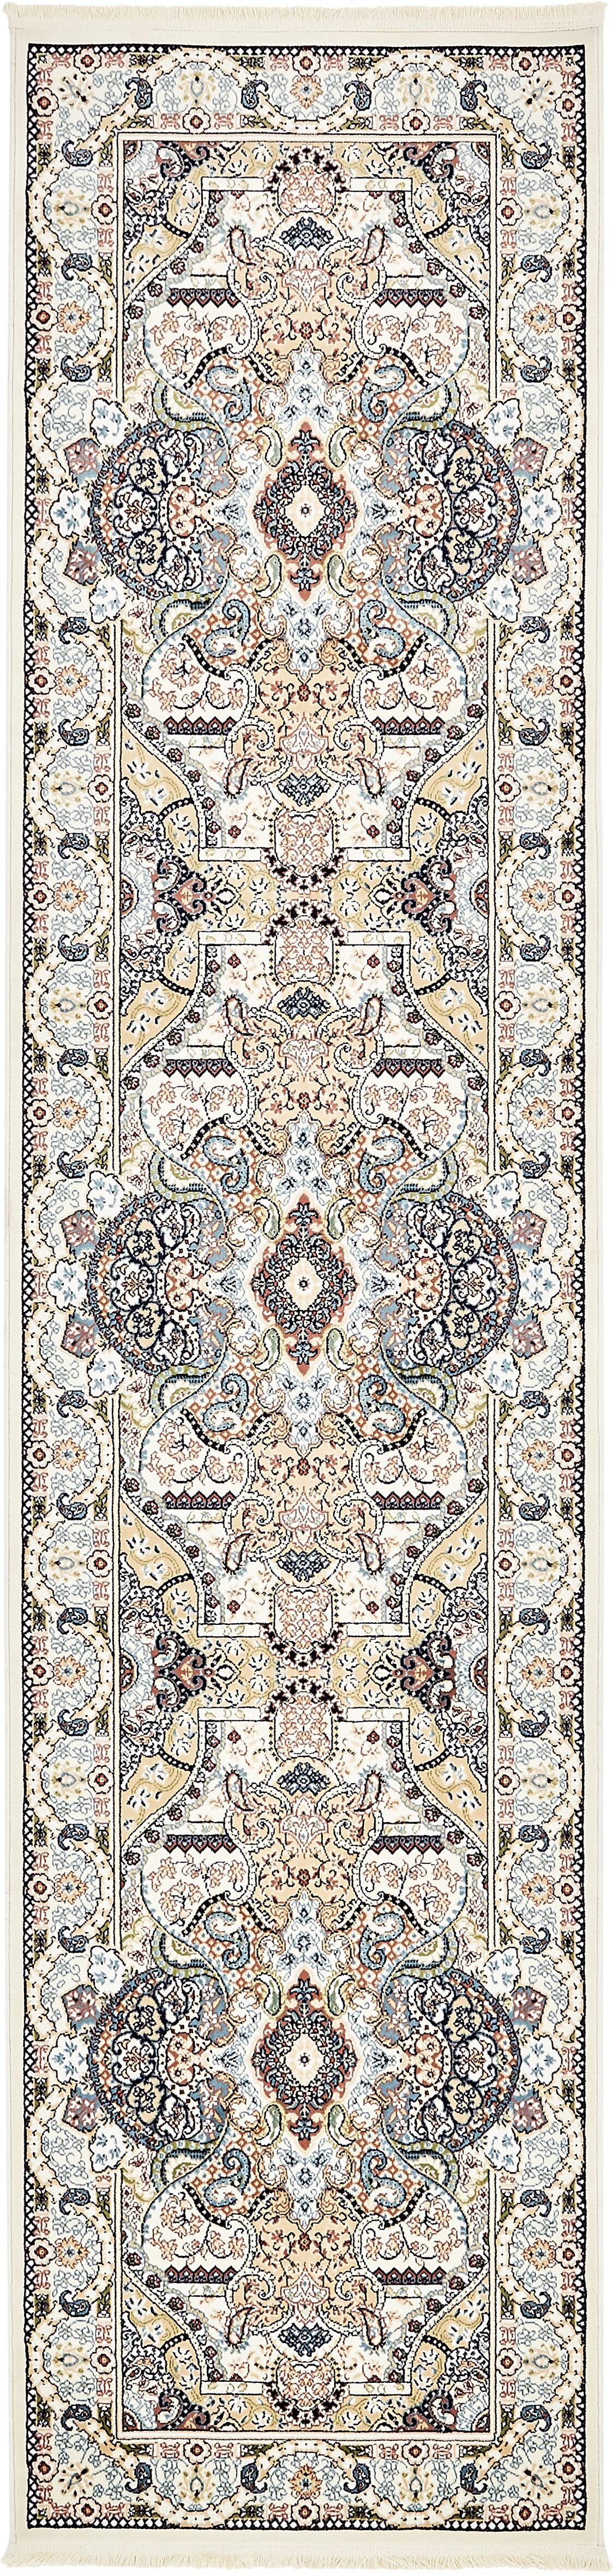 Quince Ivory/Tan Area Rug Rug Size: Runner 3' x 13'